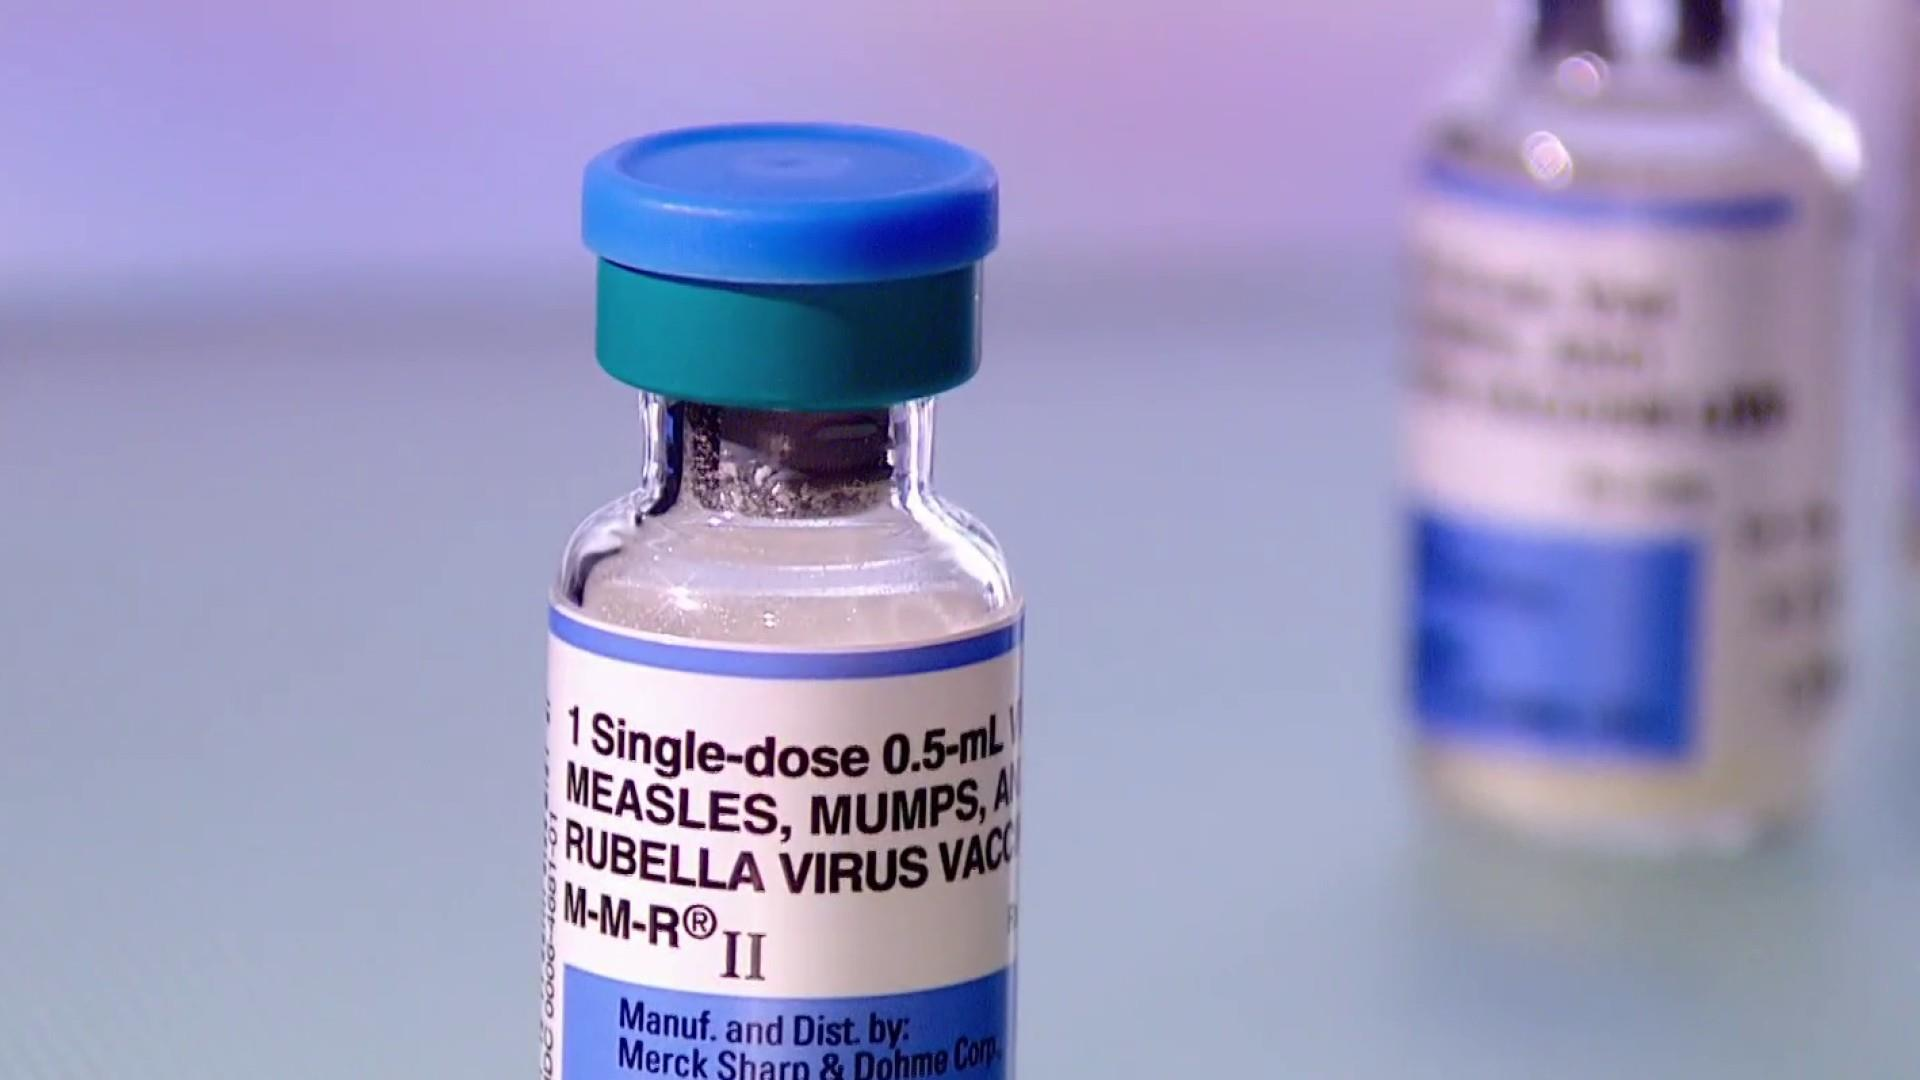 NYC officials declare public emergency after measles outbreak